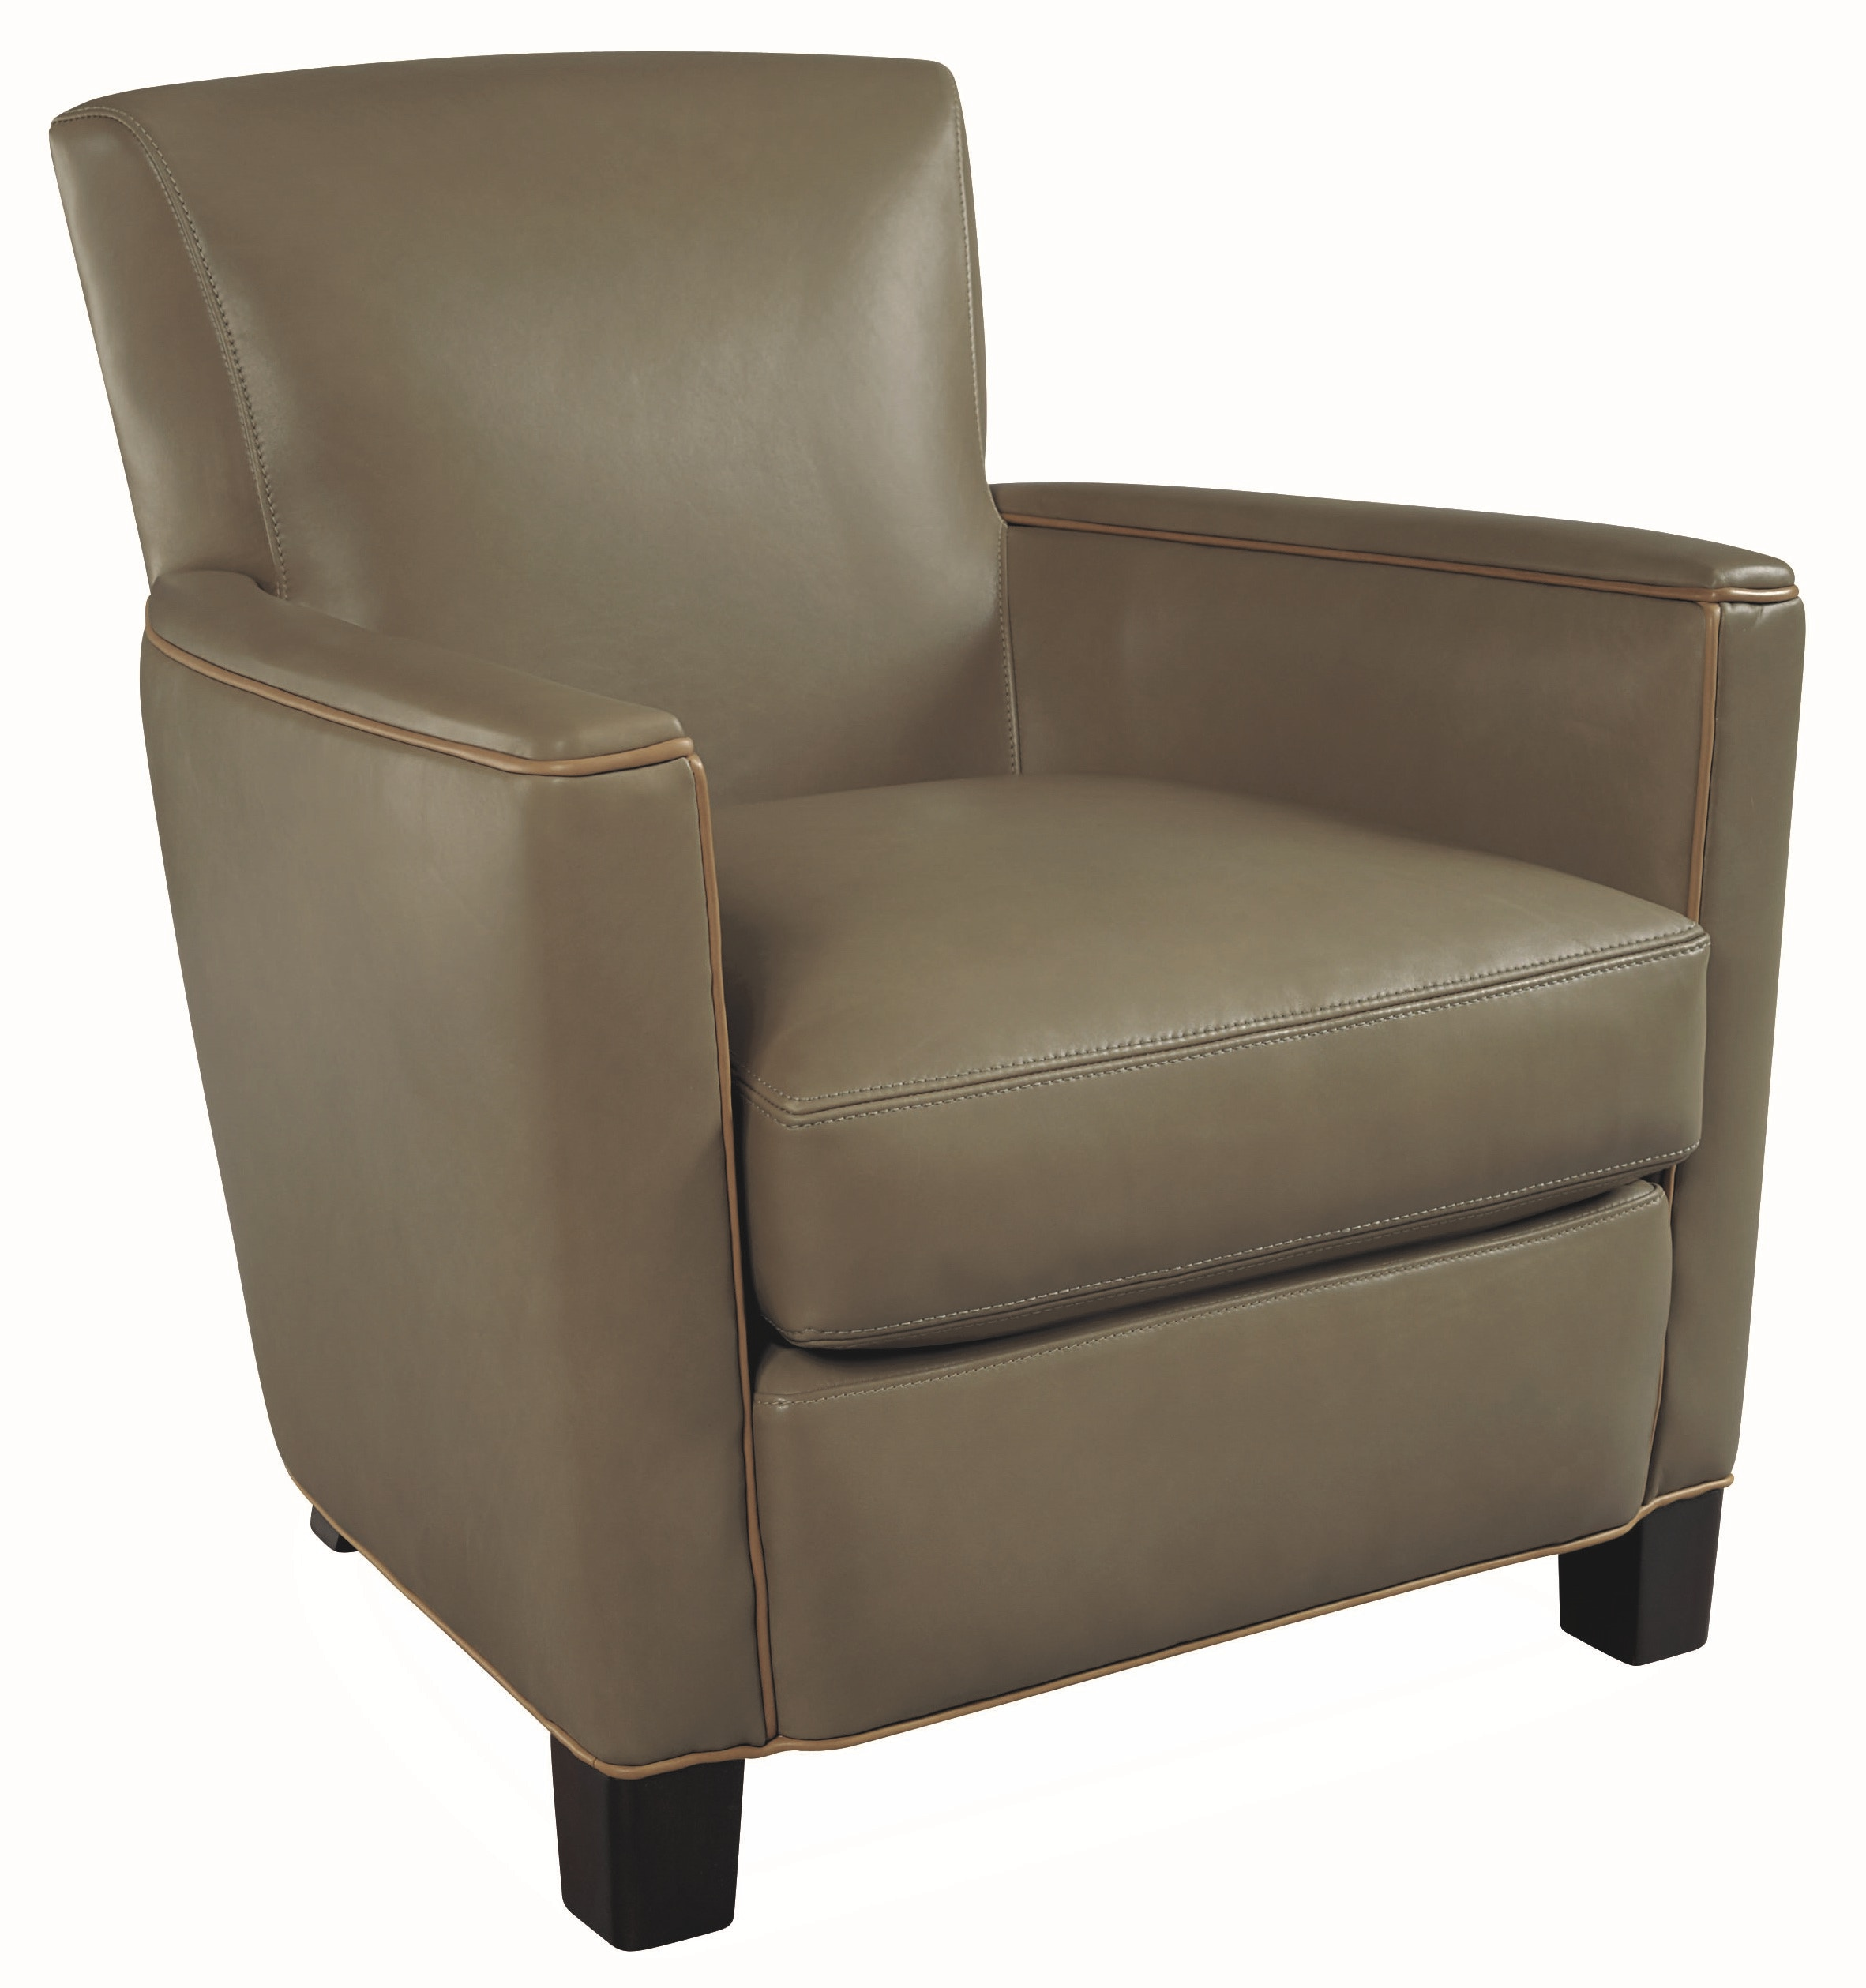 Lee Industries Leather Chair L1017 01